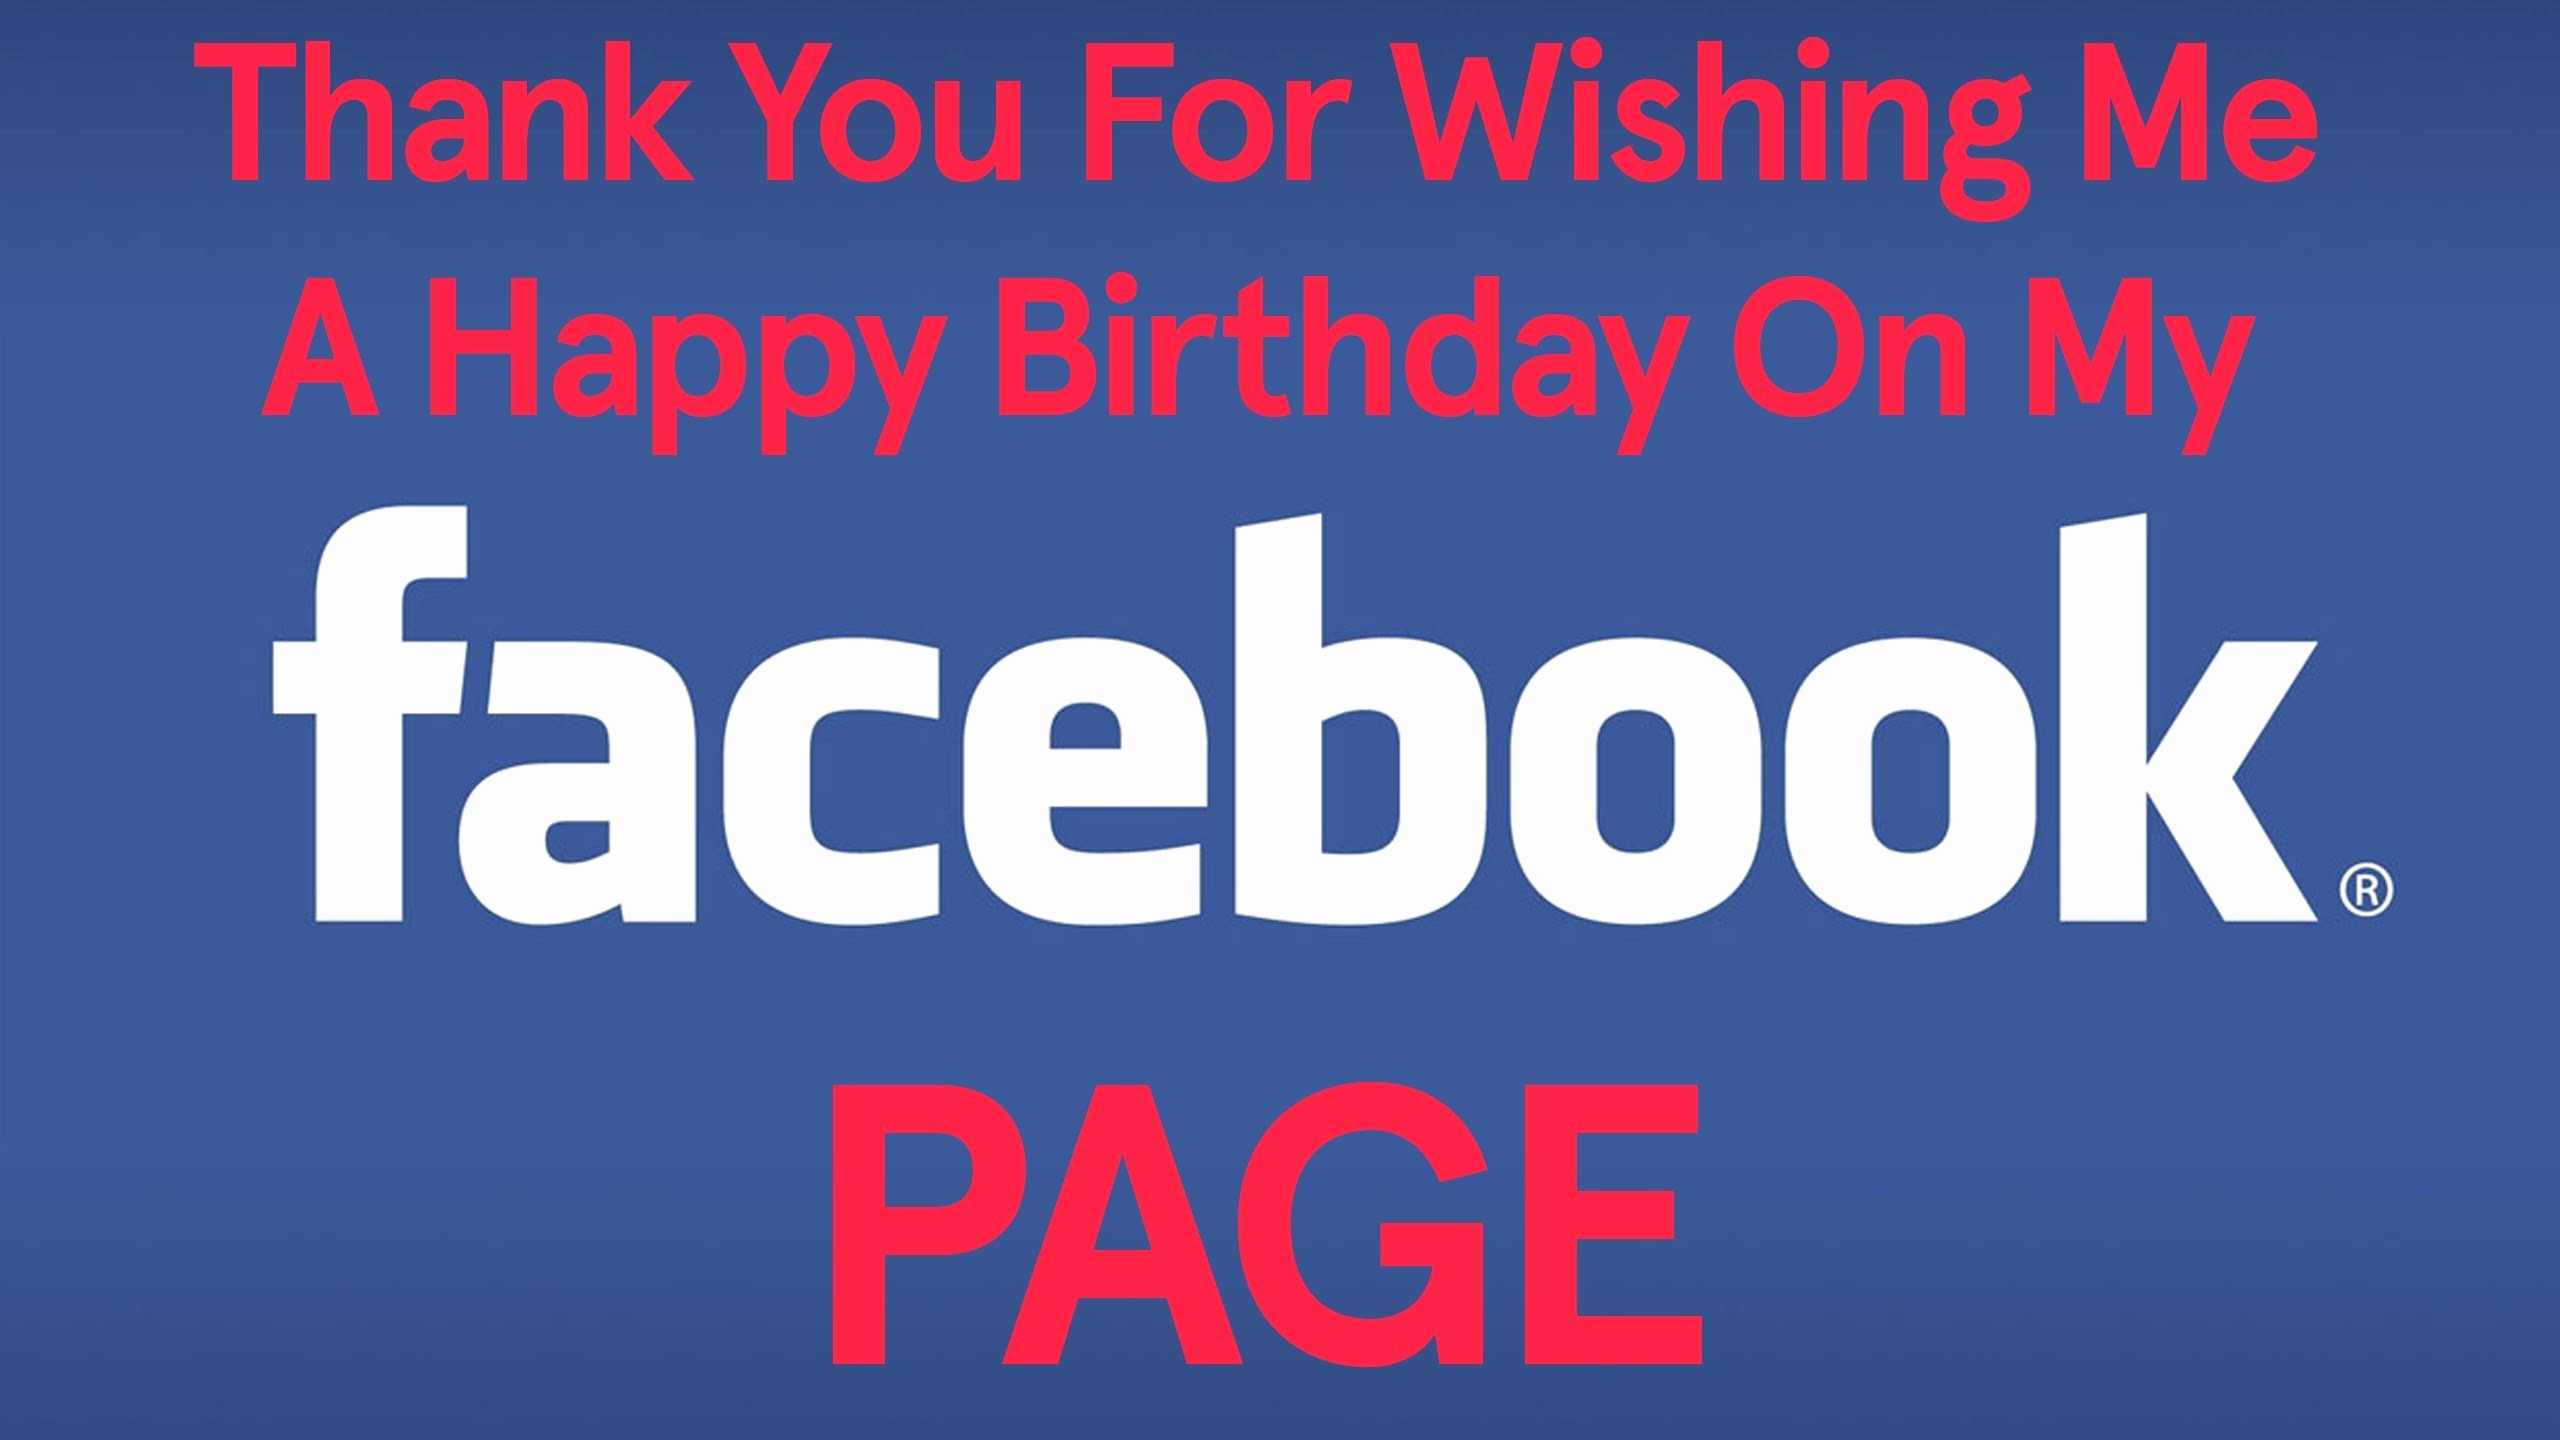 birthday wishes reply thanks message ; birthday-wishes-reply-with-thanks-quotes-inspirational-thank-you-for-wishing-me-a-happy-birthday-my-page-of-birthday-wishes-reply-with-thanks-quotes